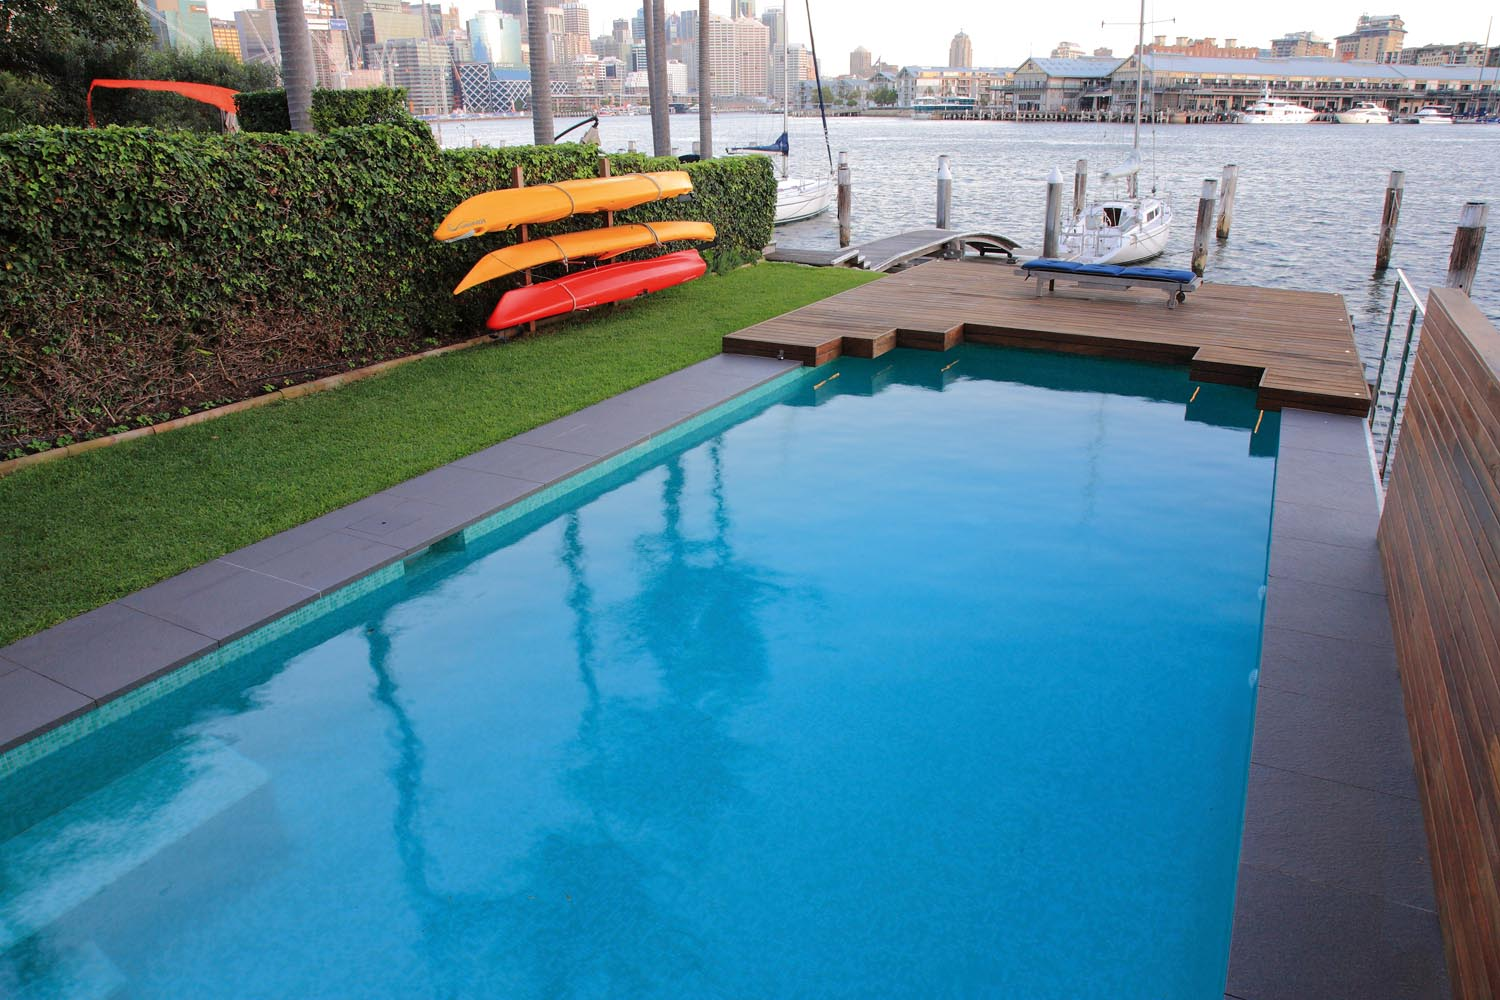 Simple pool with kayaks and a view of the city